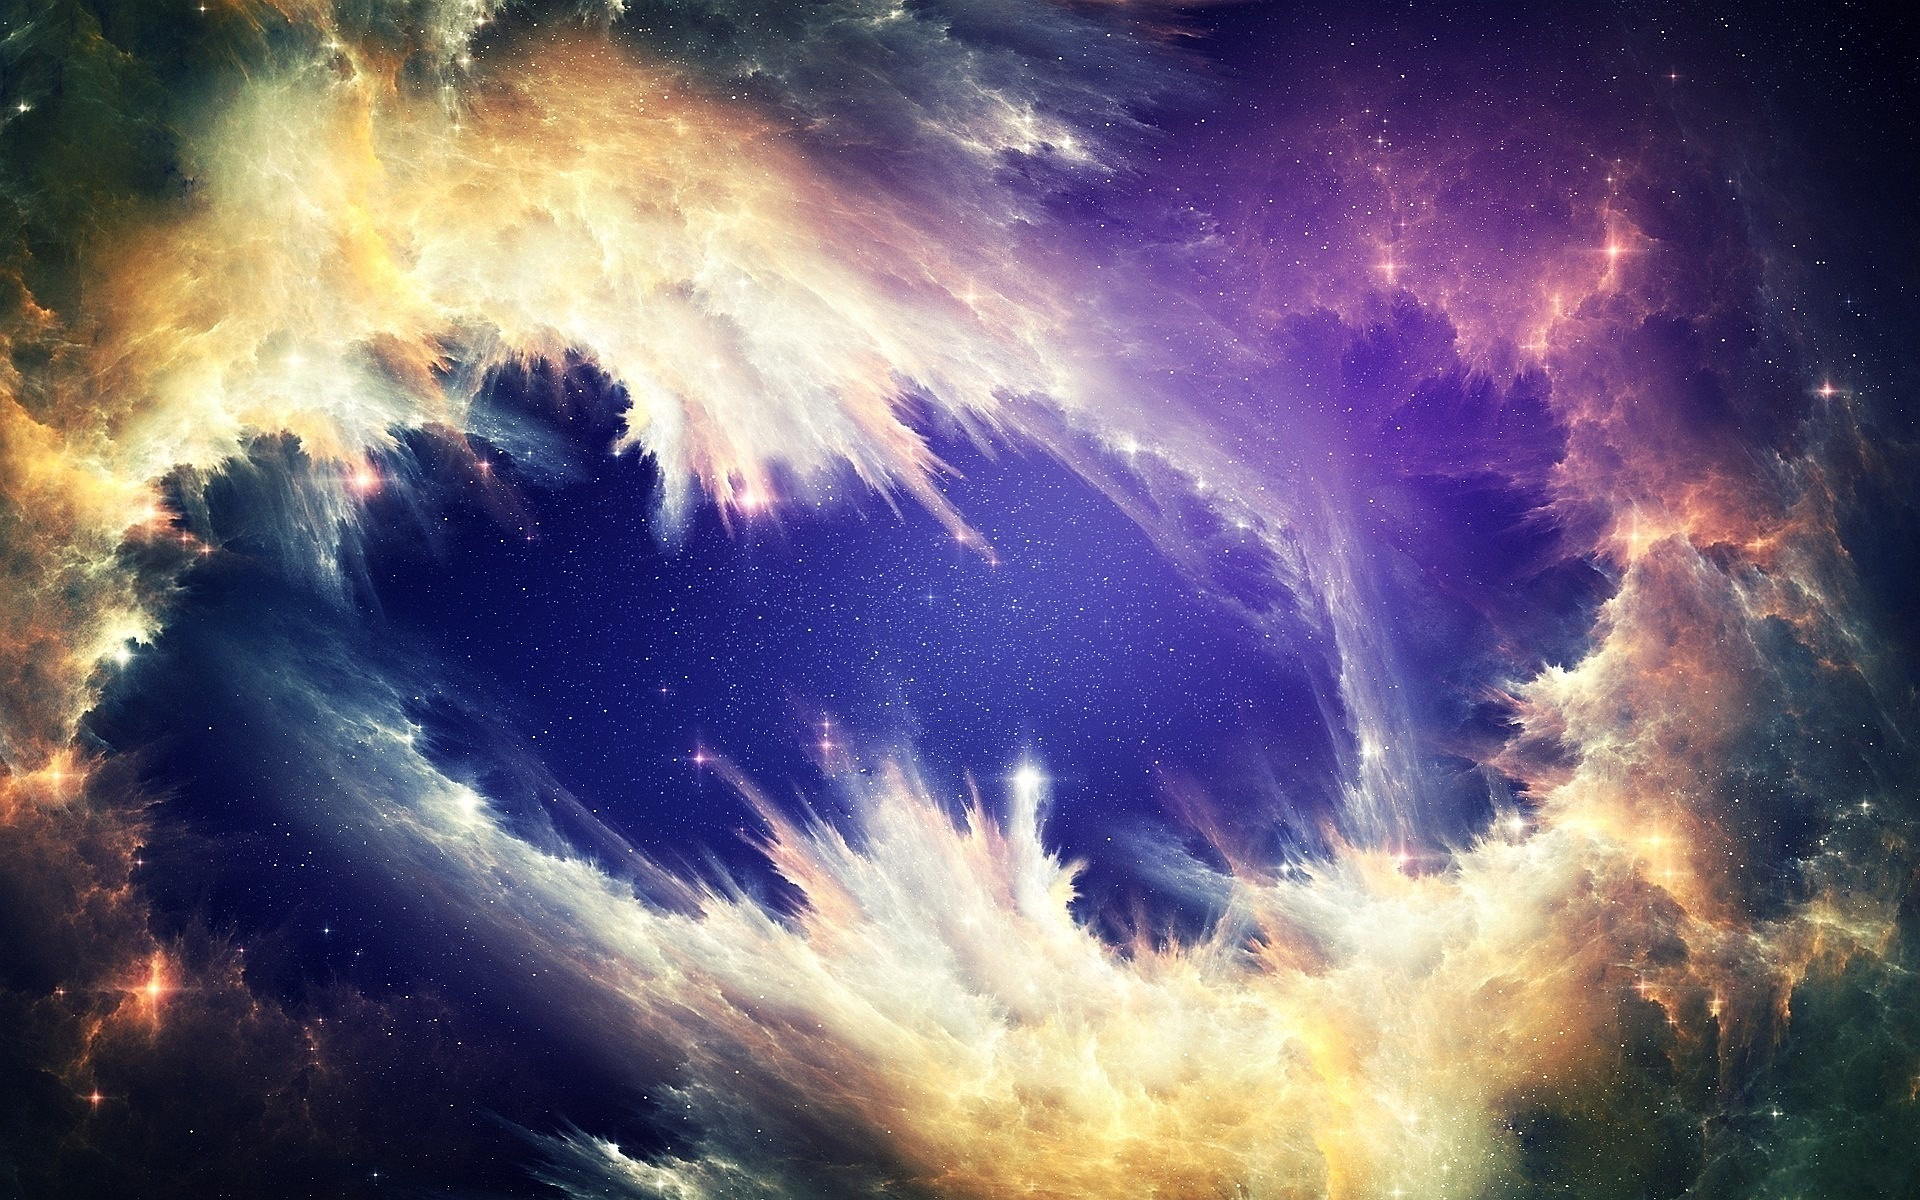 Nebula Clouds